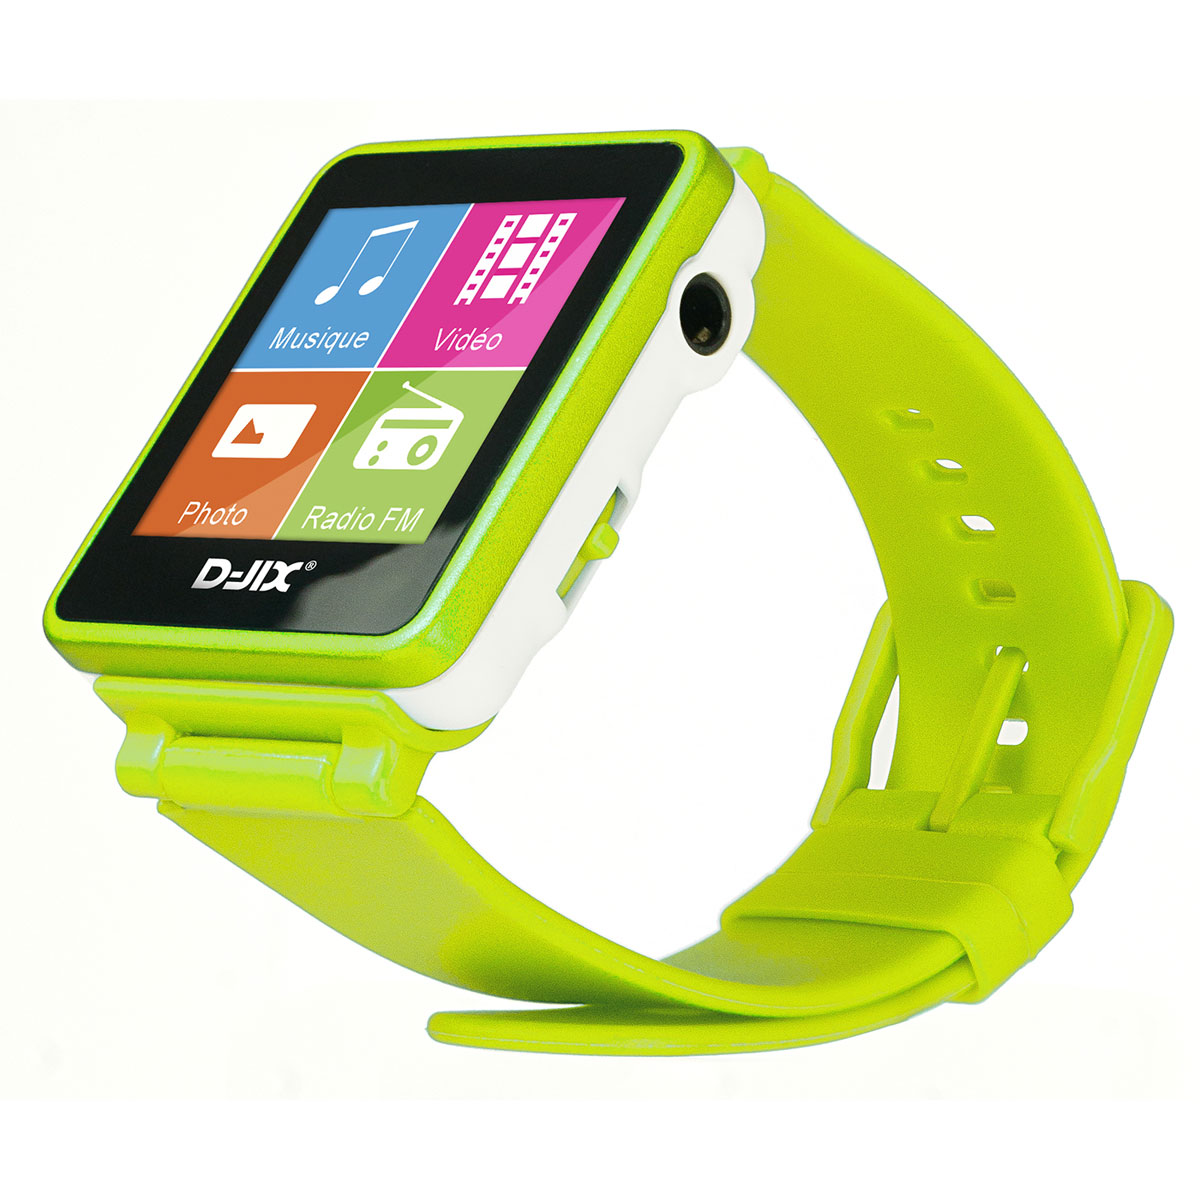 d jix d watch vert 4 go lecteur mp3 ipod d jix sur. Black Bedroom Furniture Sets. Home Design Ideas